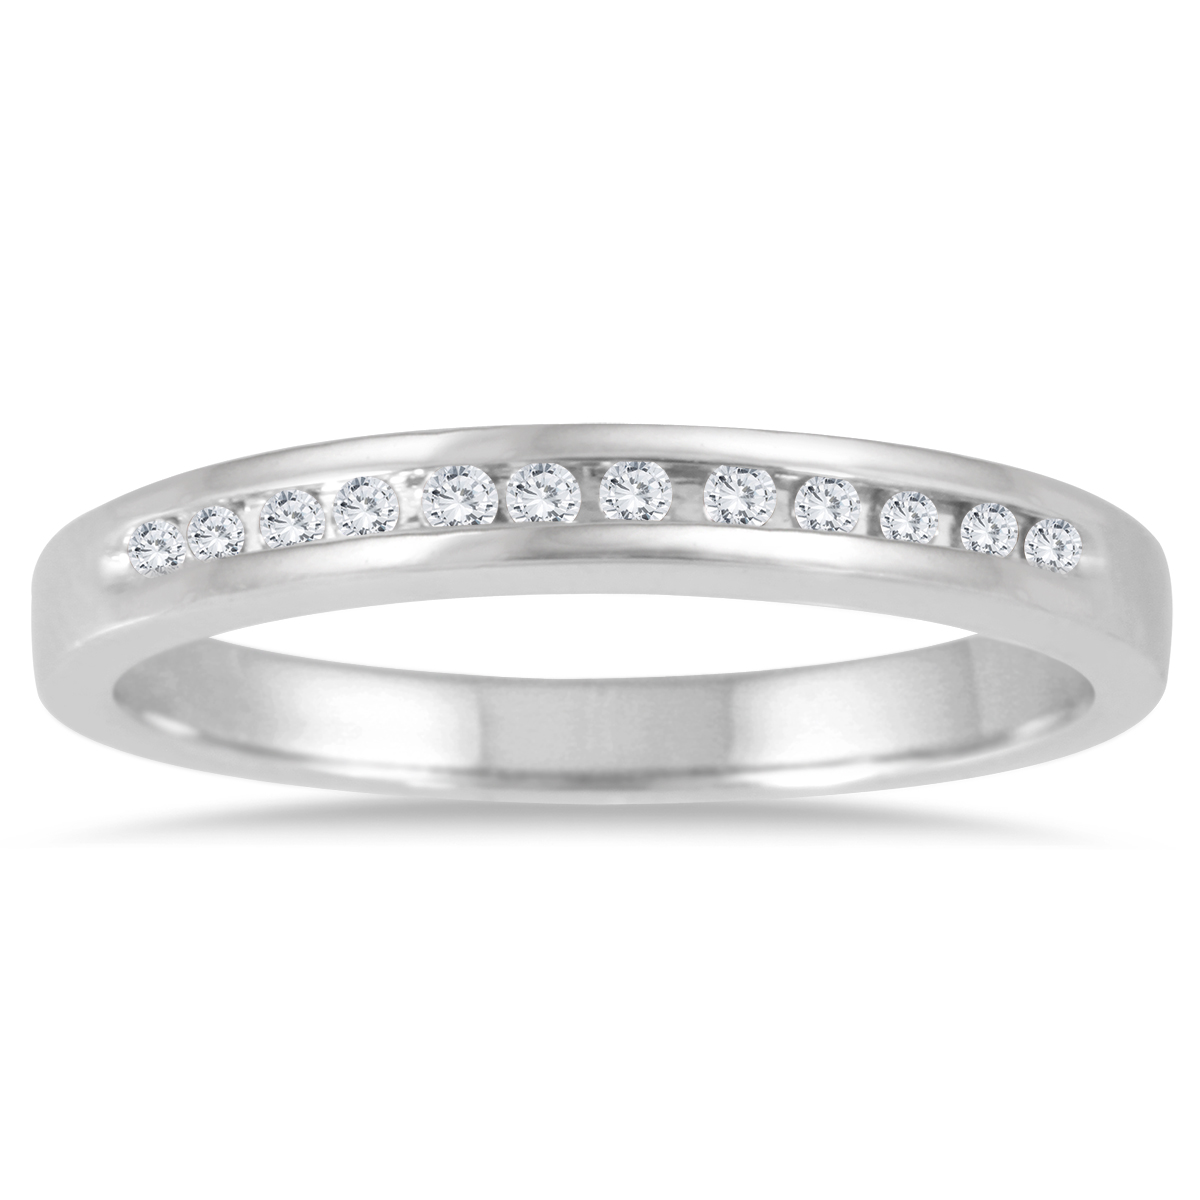 1/10 Carat TW Channel Set Diamond Band in 14K White Gold